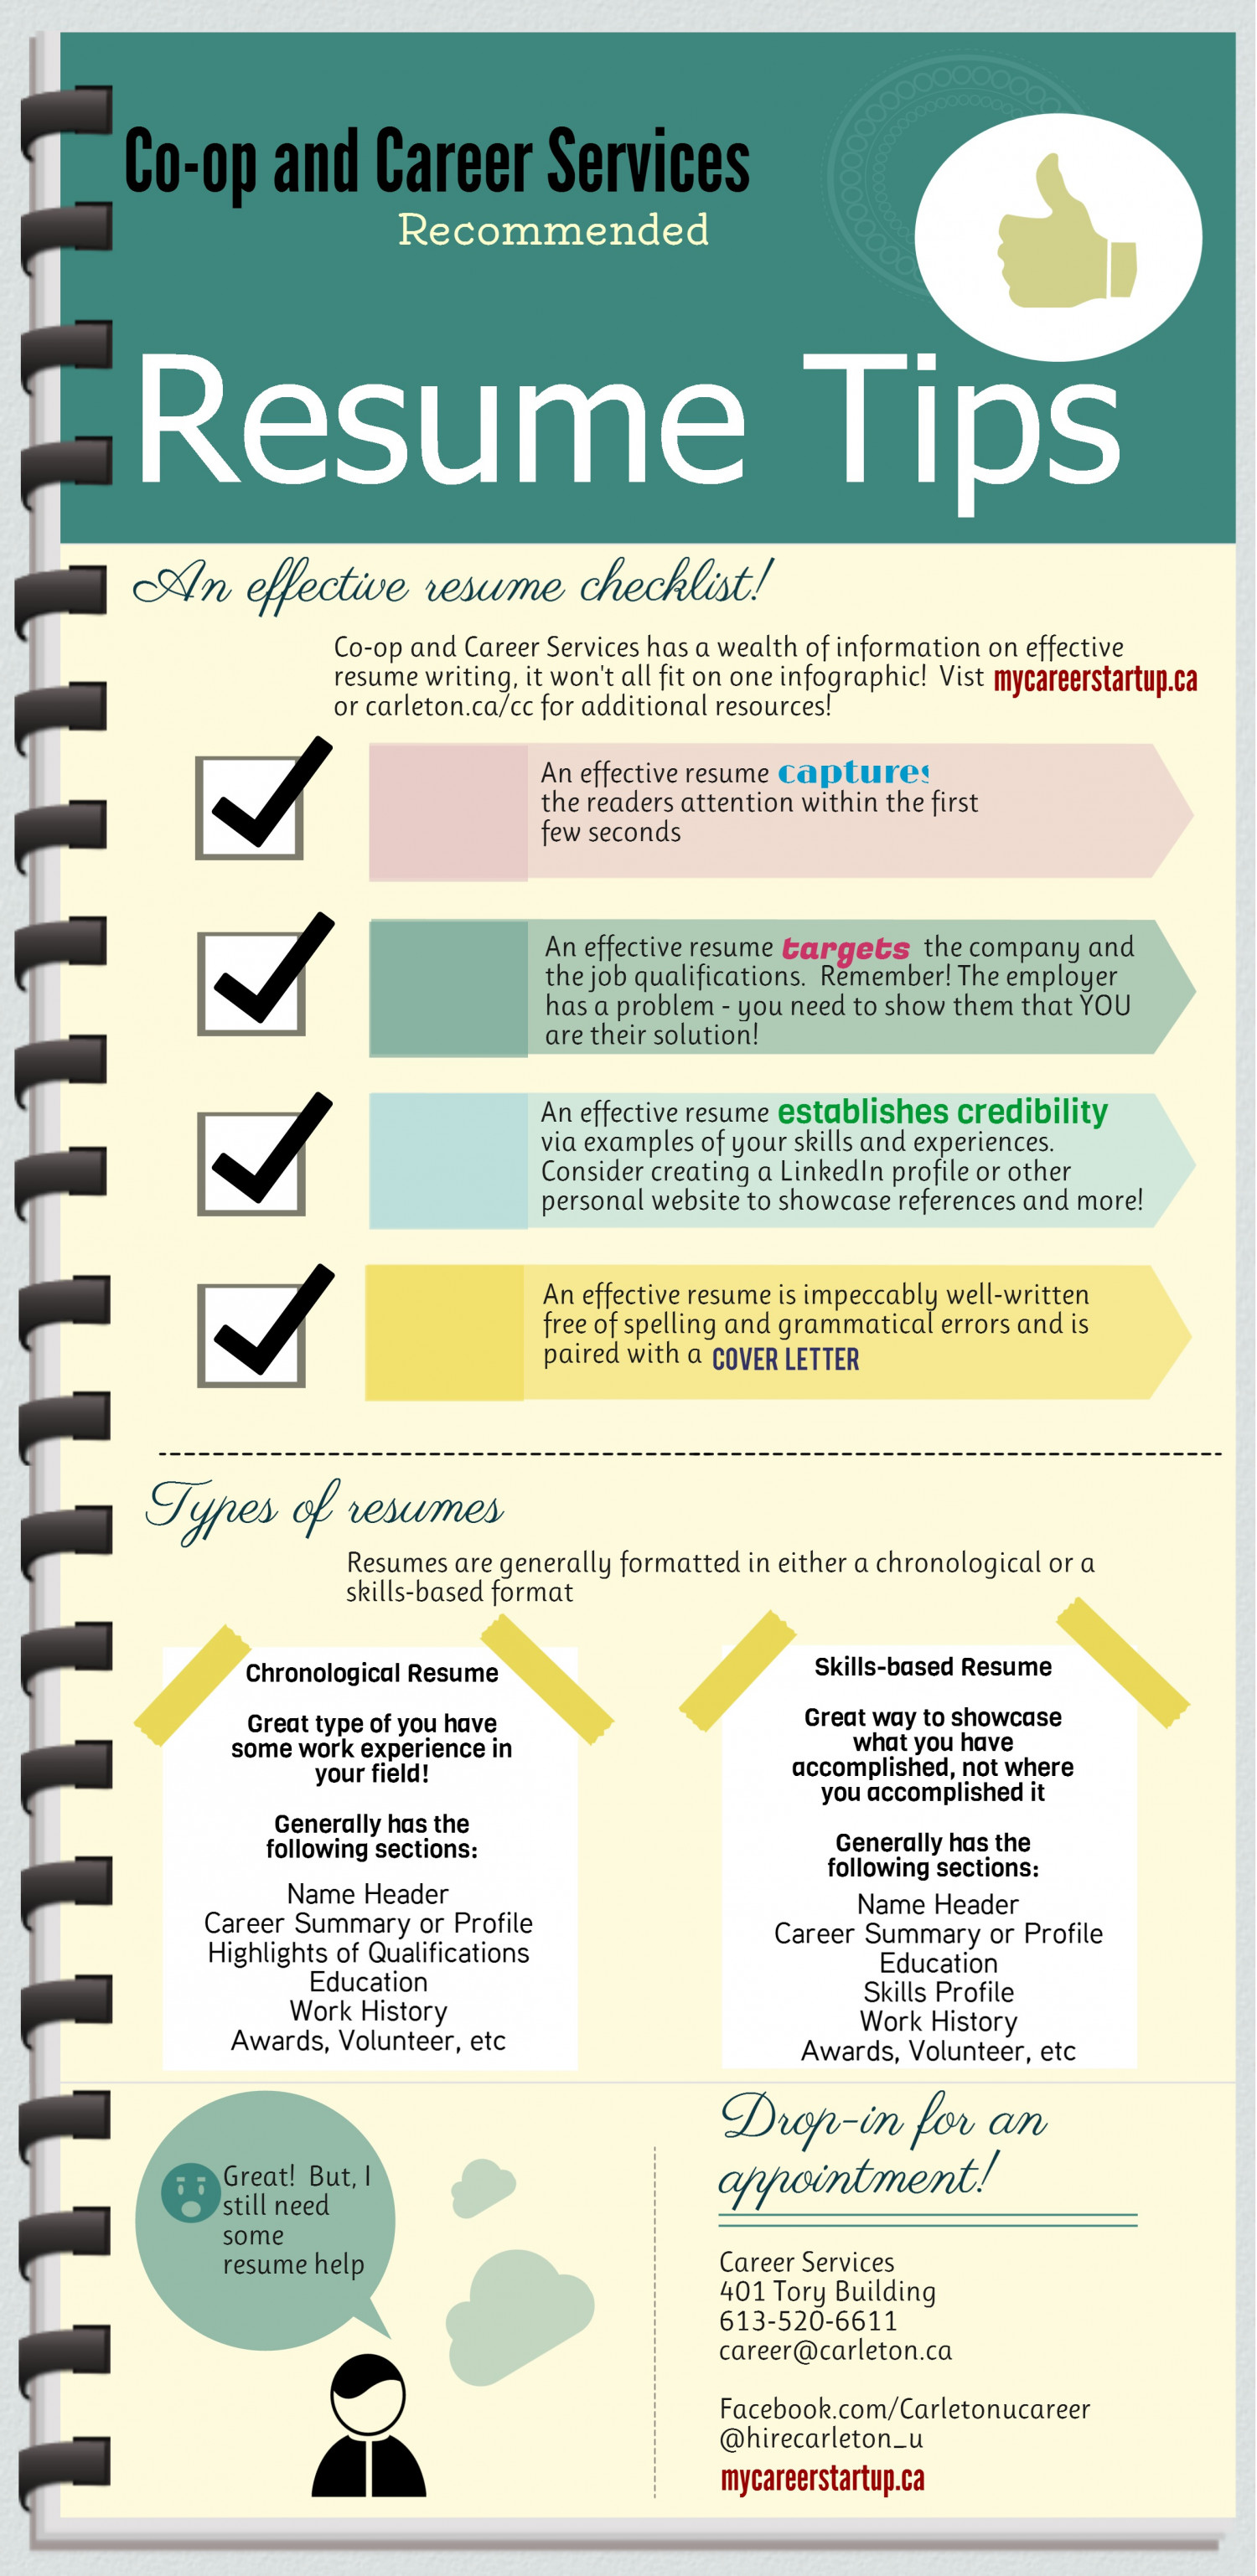 Attractive Resume Tips: An Effective Resume Checklists Infographic